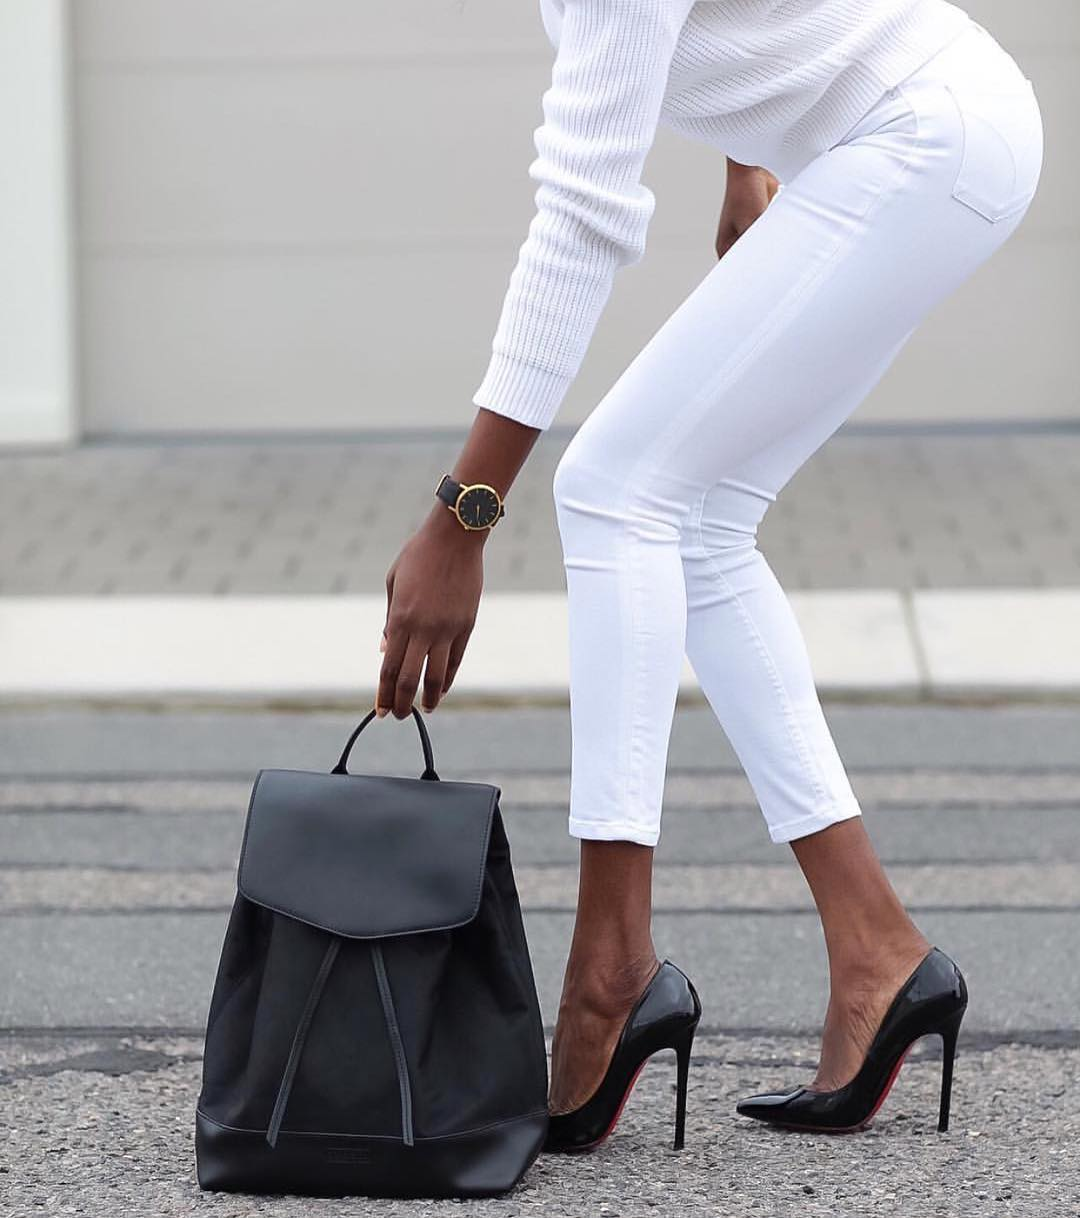 All White Outfit With Black Backpack And Black Heeled Pumps 2020